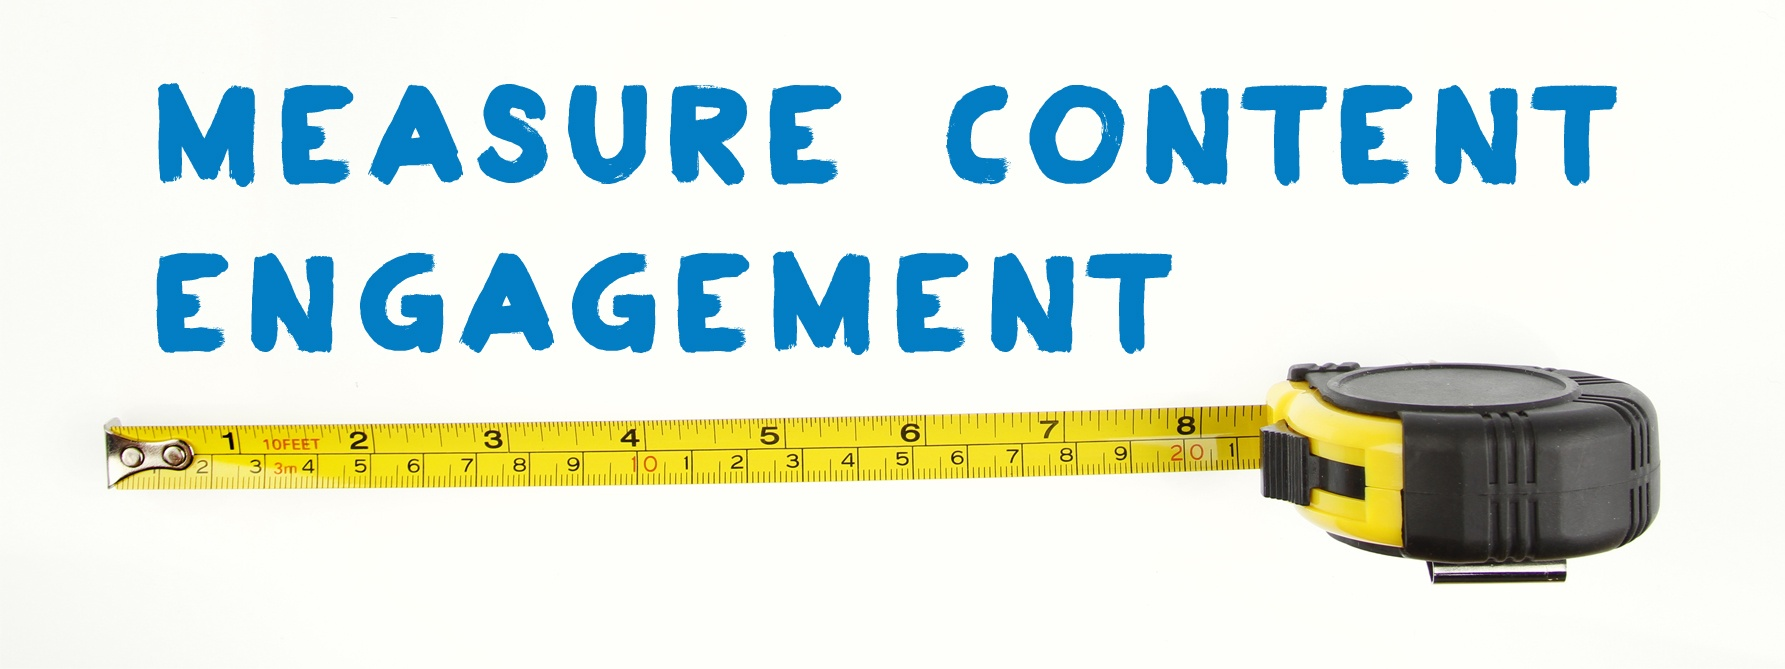 Measure Content Engagement